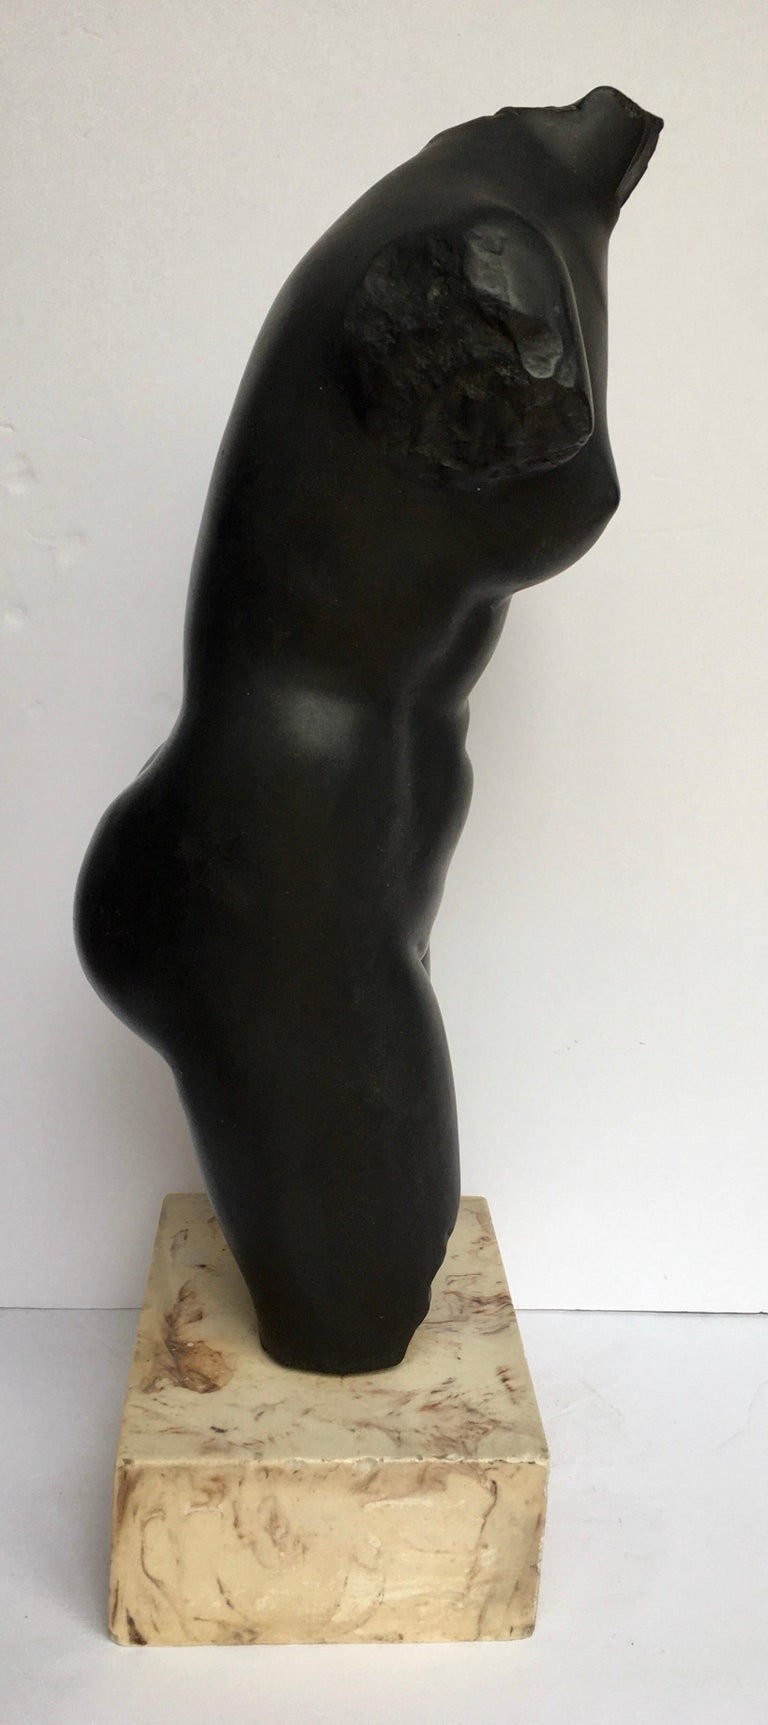 Late 20th Century Mid-Century Modern Plaster and Marble Female Torso Bust Sculpture, 1970s